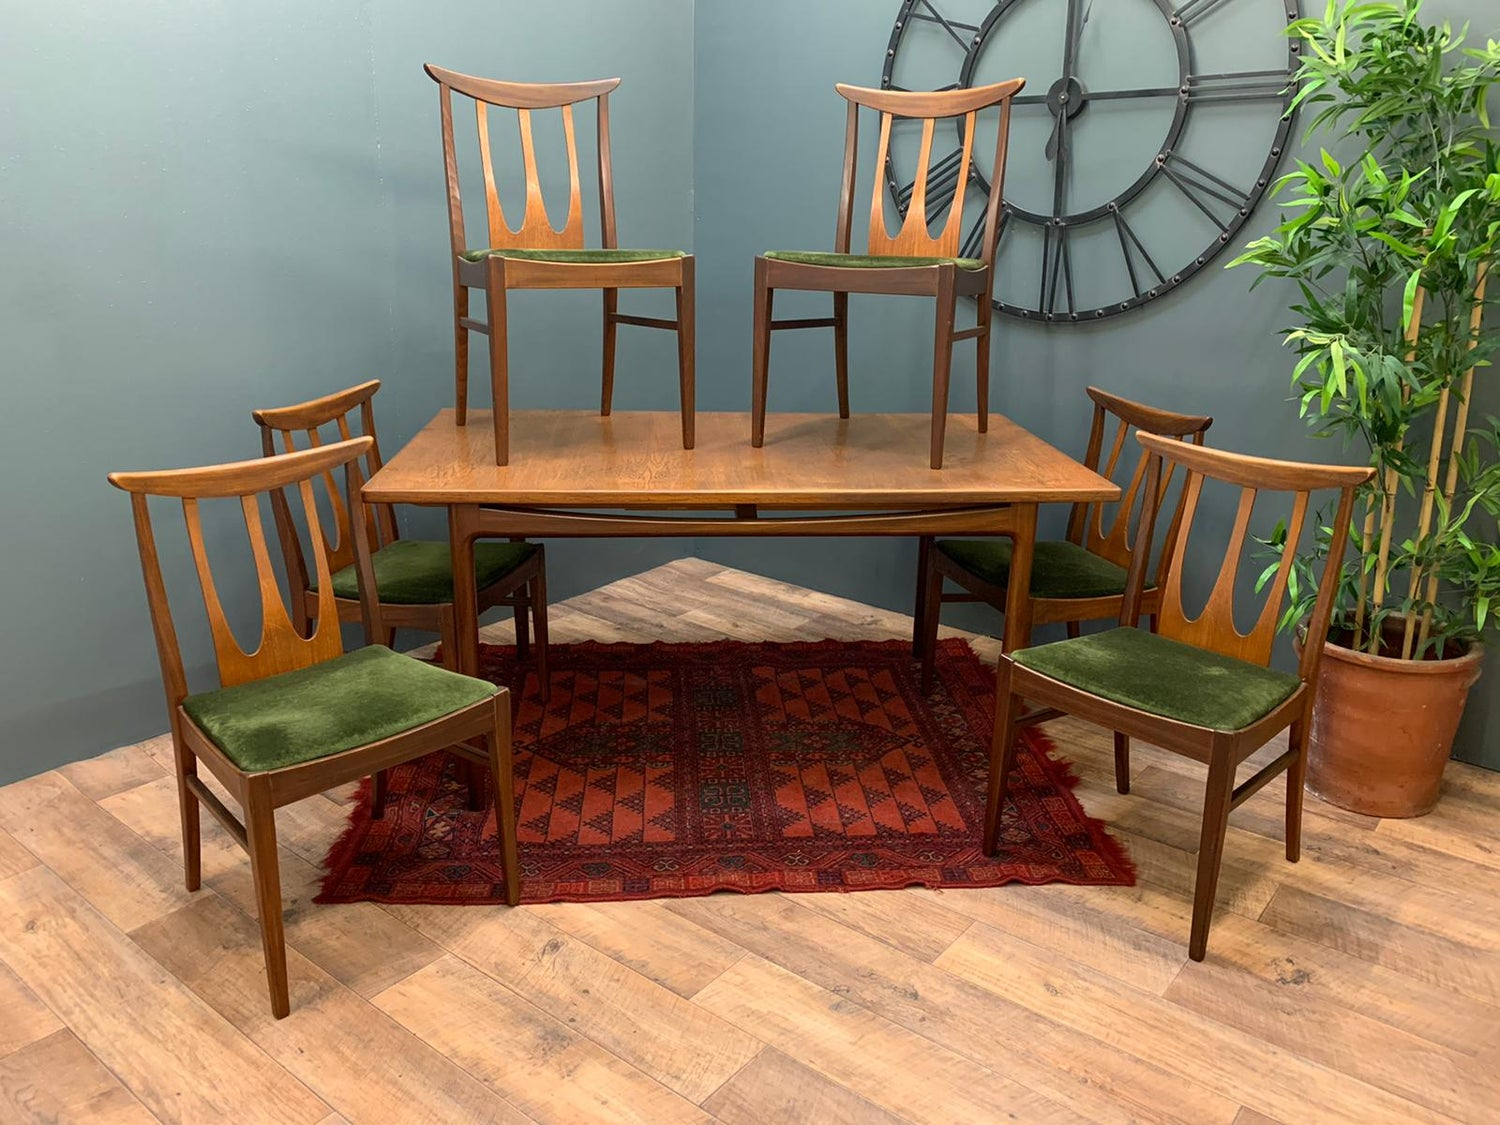 Image of Gplan dining table & Chairs